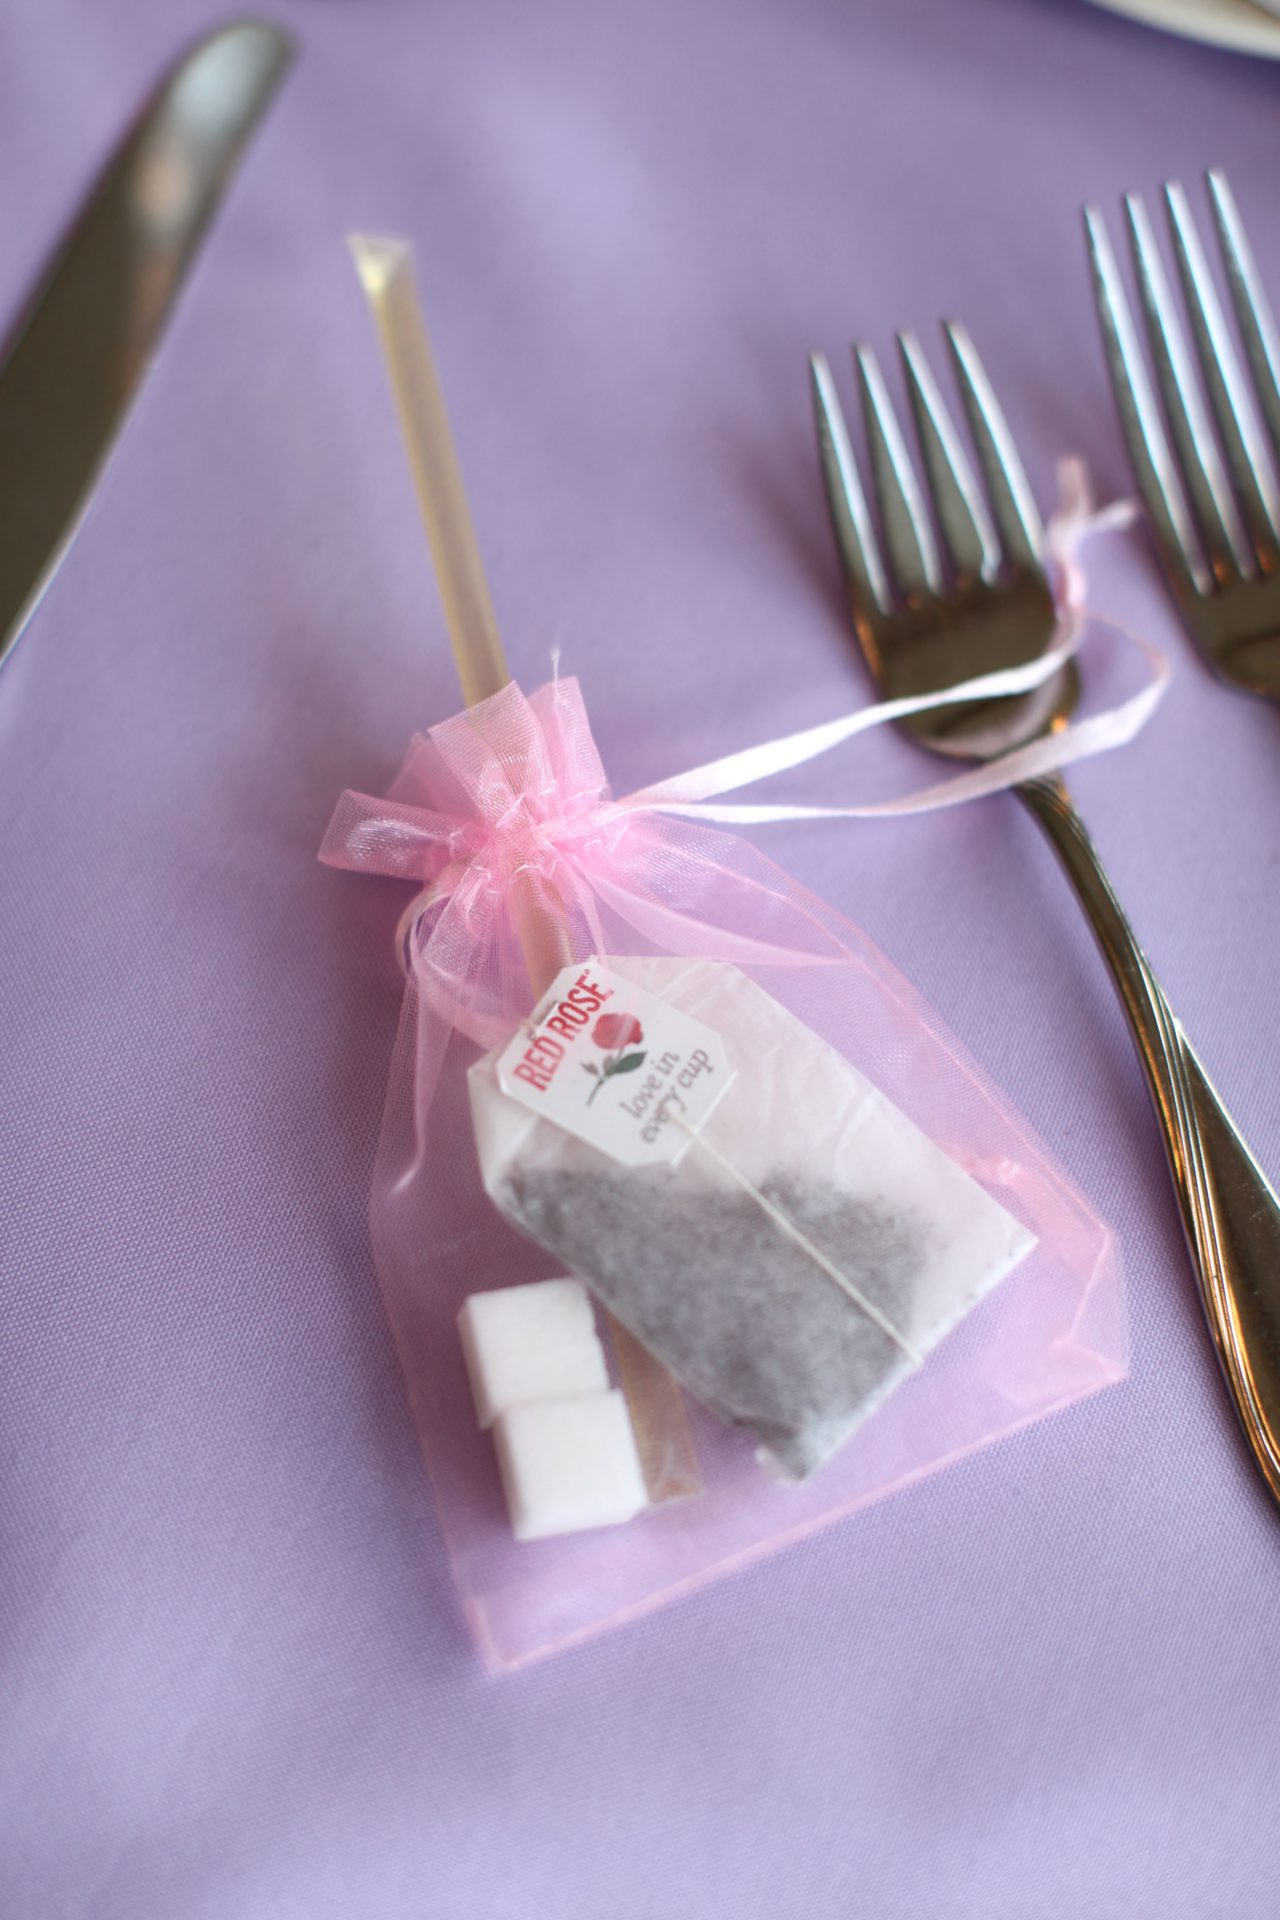 tea party theme wedding wedding favor of tea bag, sugar cubes, and honey stick